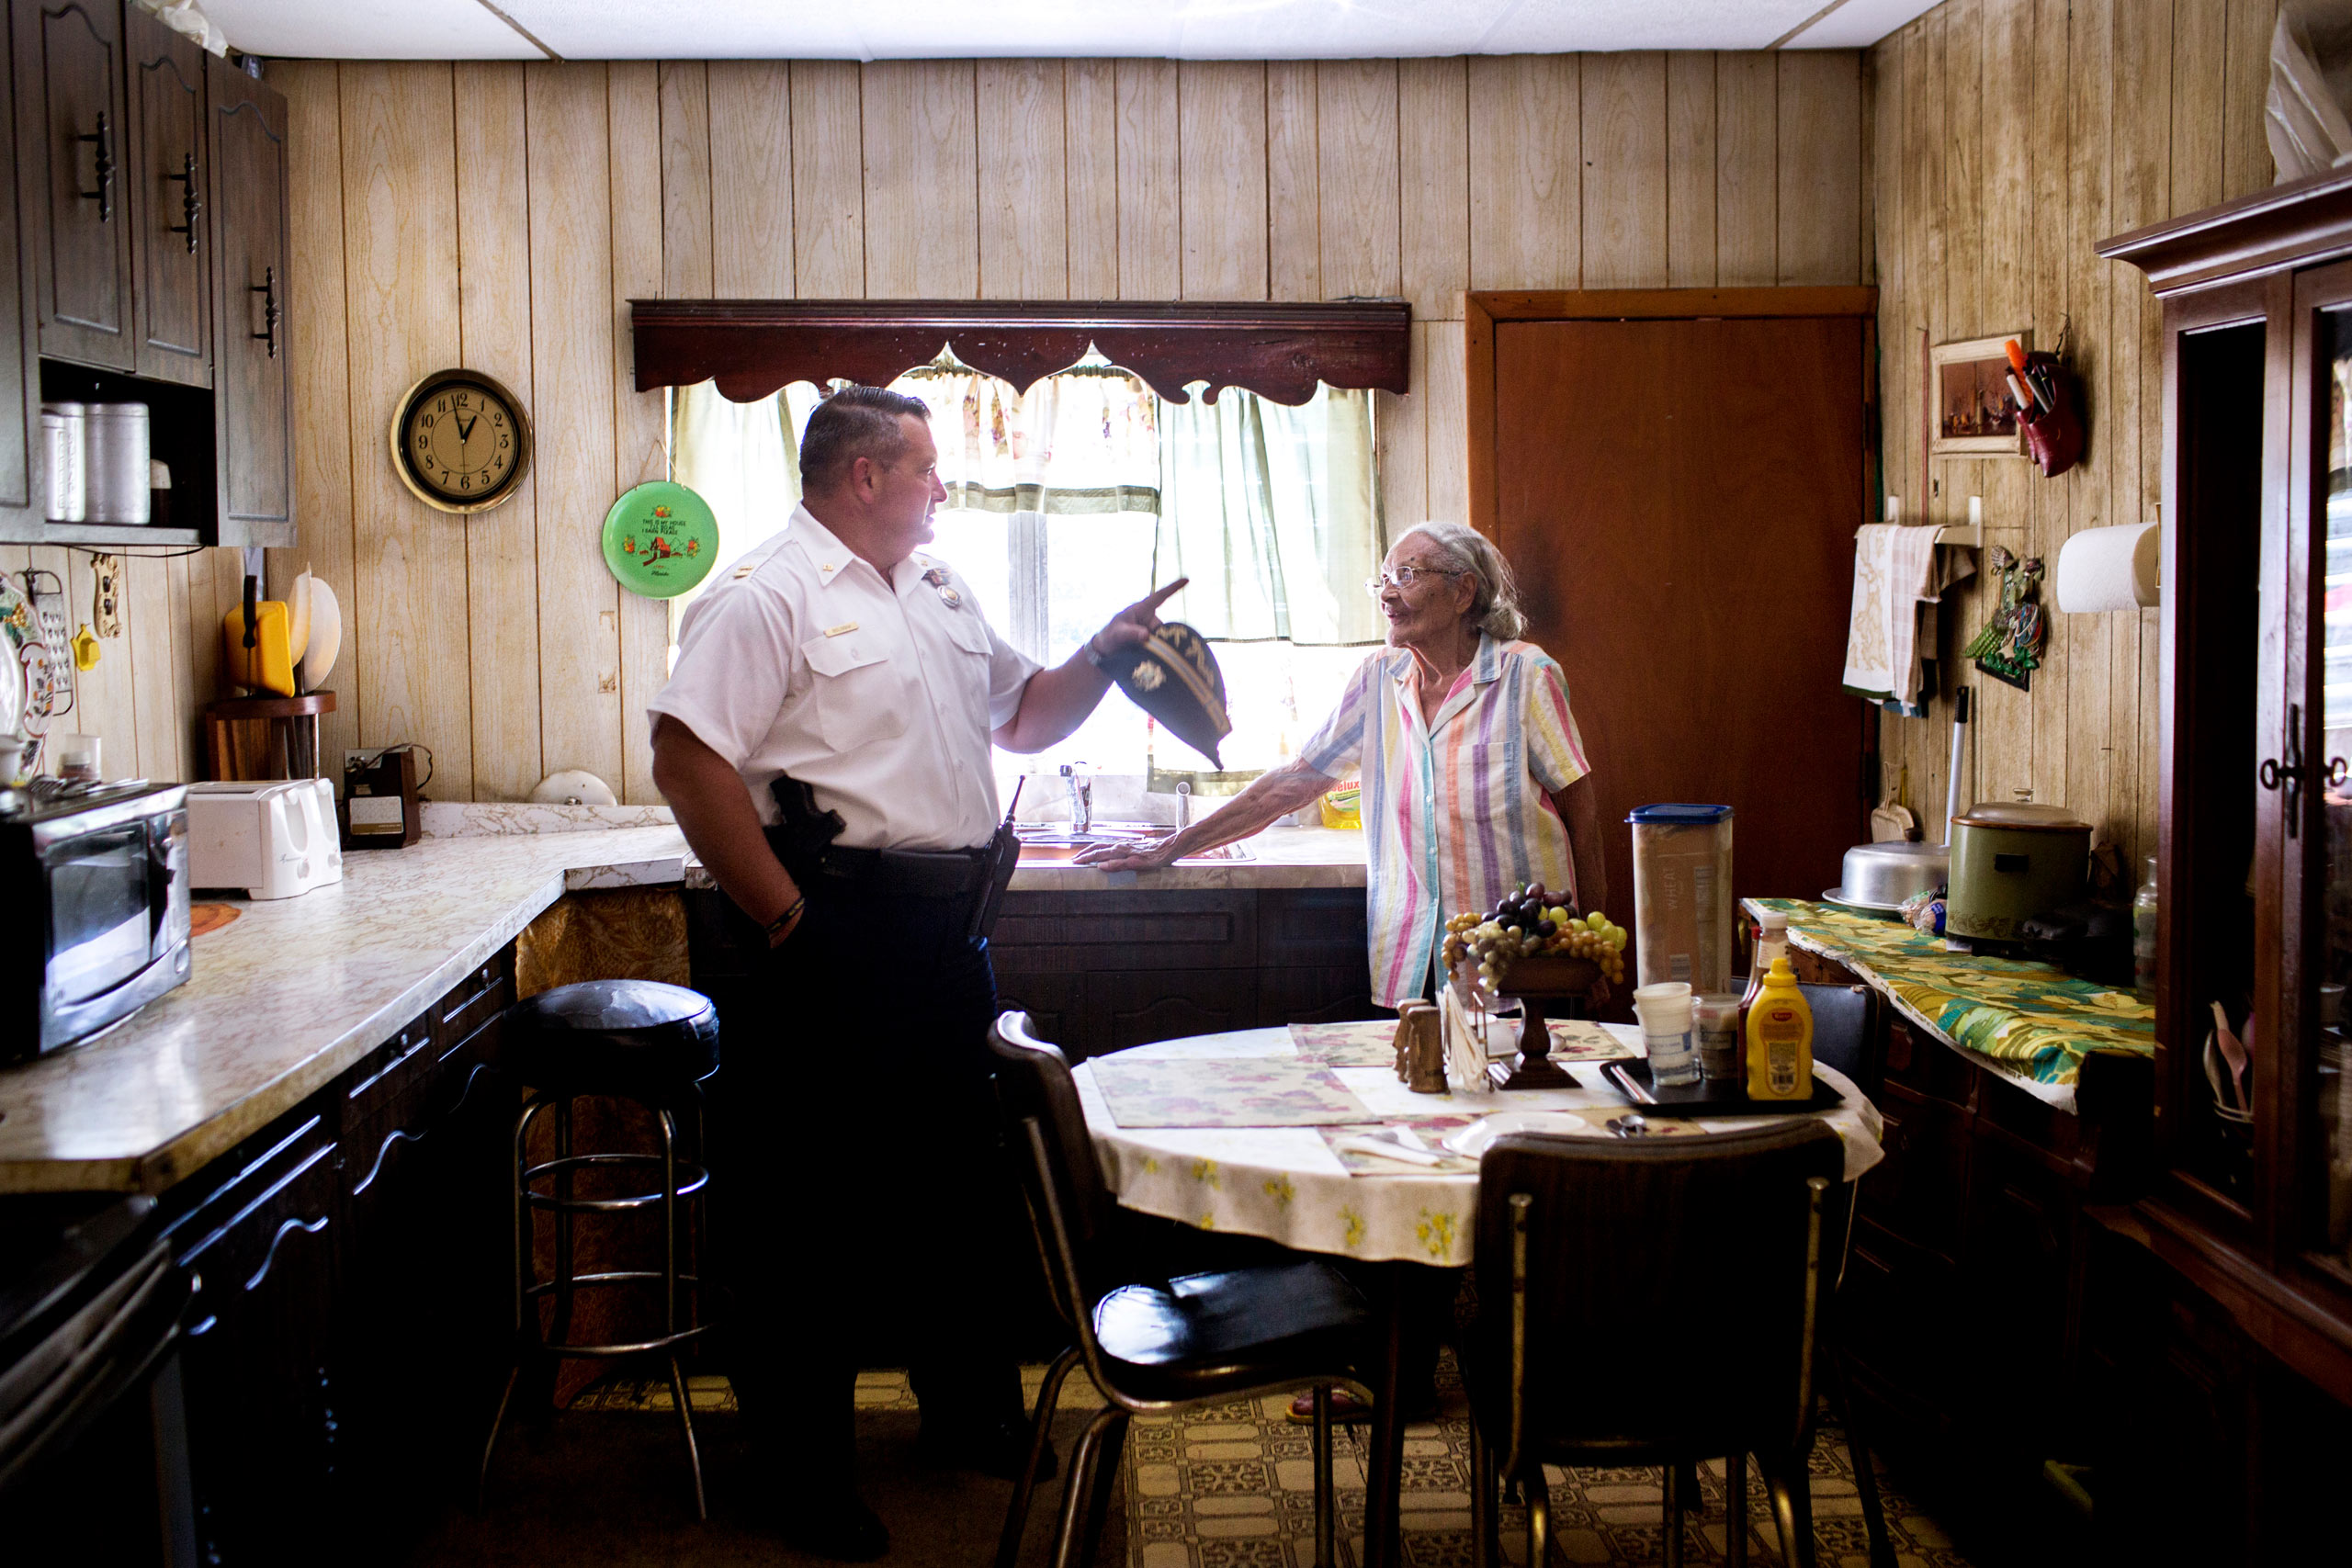 Captain Joe Bologna chats with Louise Robinson in her kitchen after she called him in off the street to look at a problem with overgrowth and vermine in the unkempt garden of an abandoned house behind her home. Robinson has lived in her home down the street from the 19th District station since the '50s, and says that hers was one of the first black families to move to the neighborhood. July 31, 2015. Philadelphia, Pa.